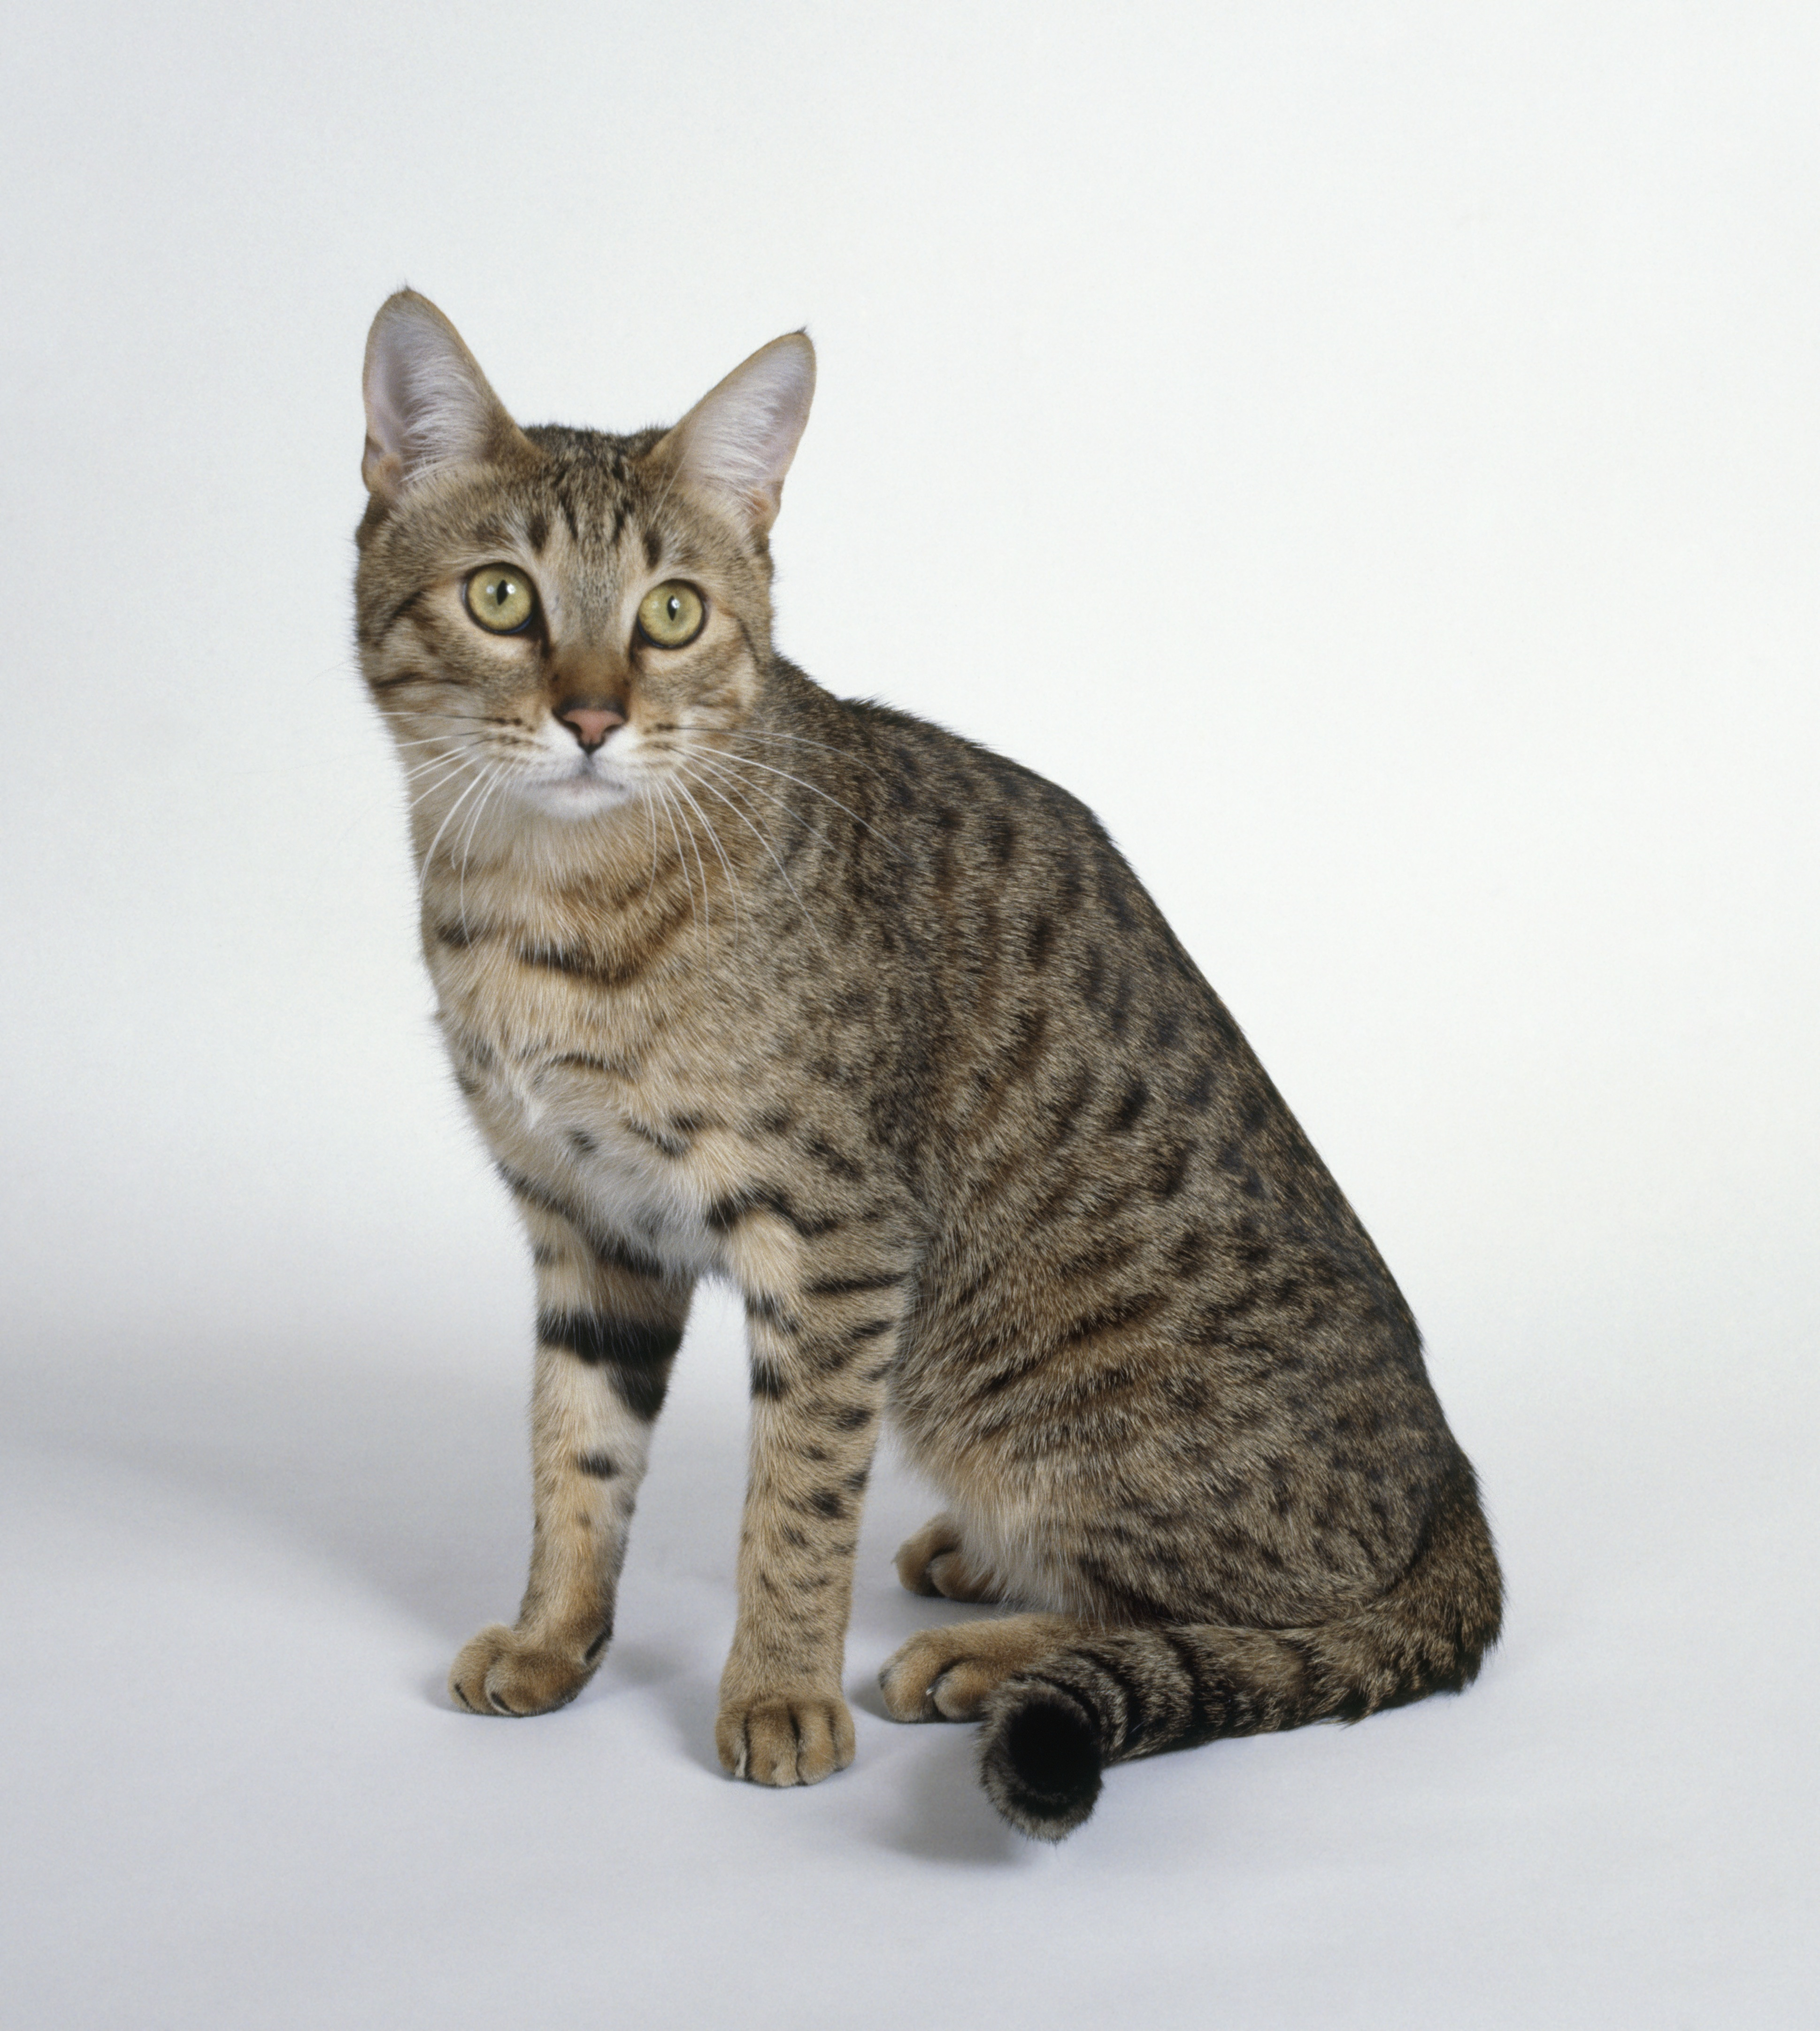 California Spangled Mixed Cat Breed Pictures